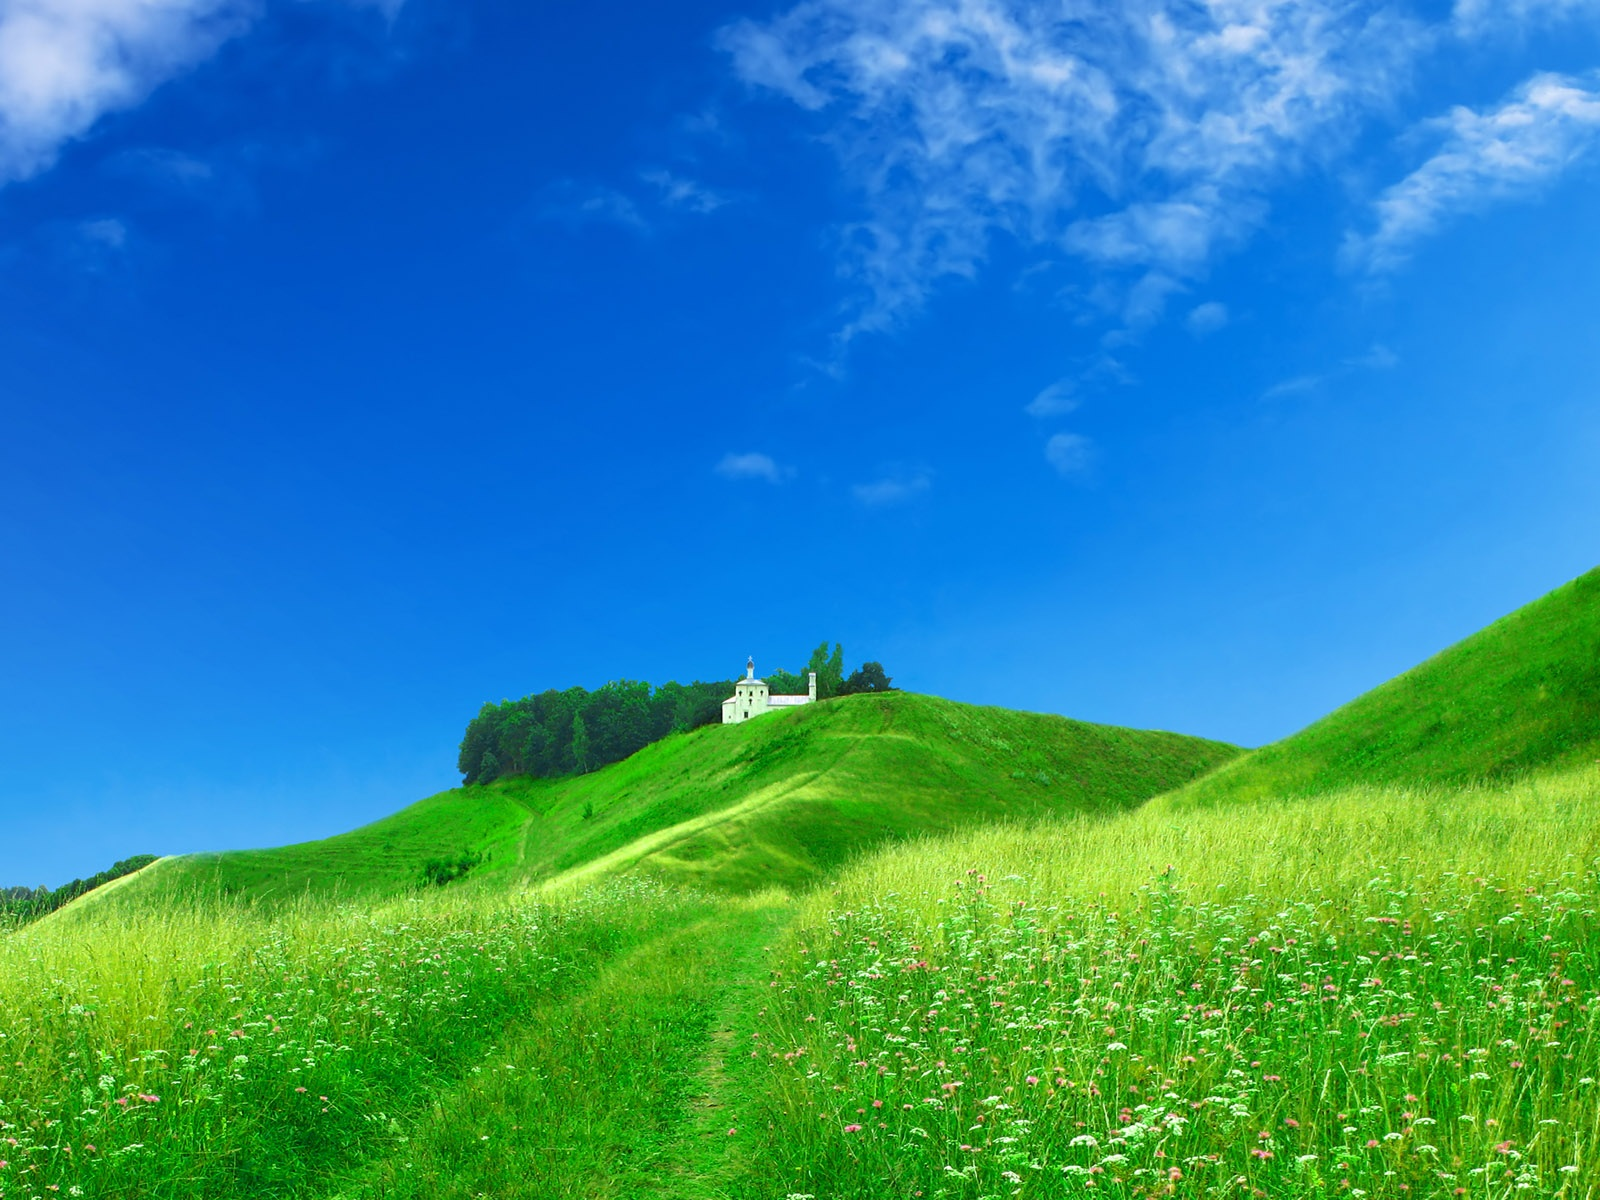 Dream home on the green hillside wallpaper - 1600x1200